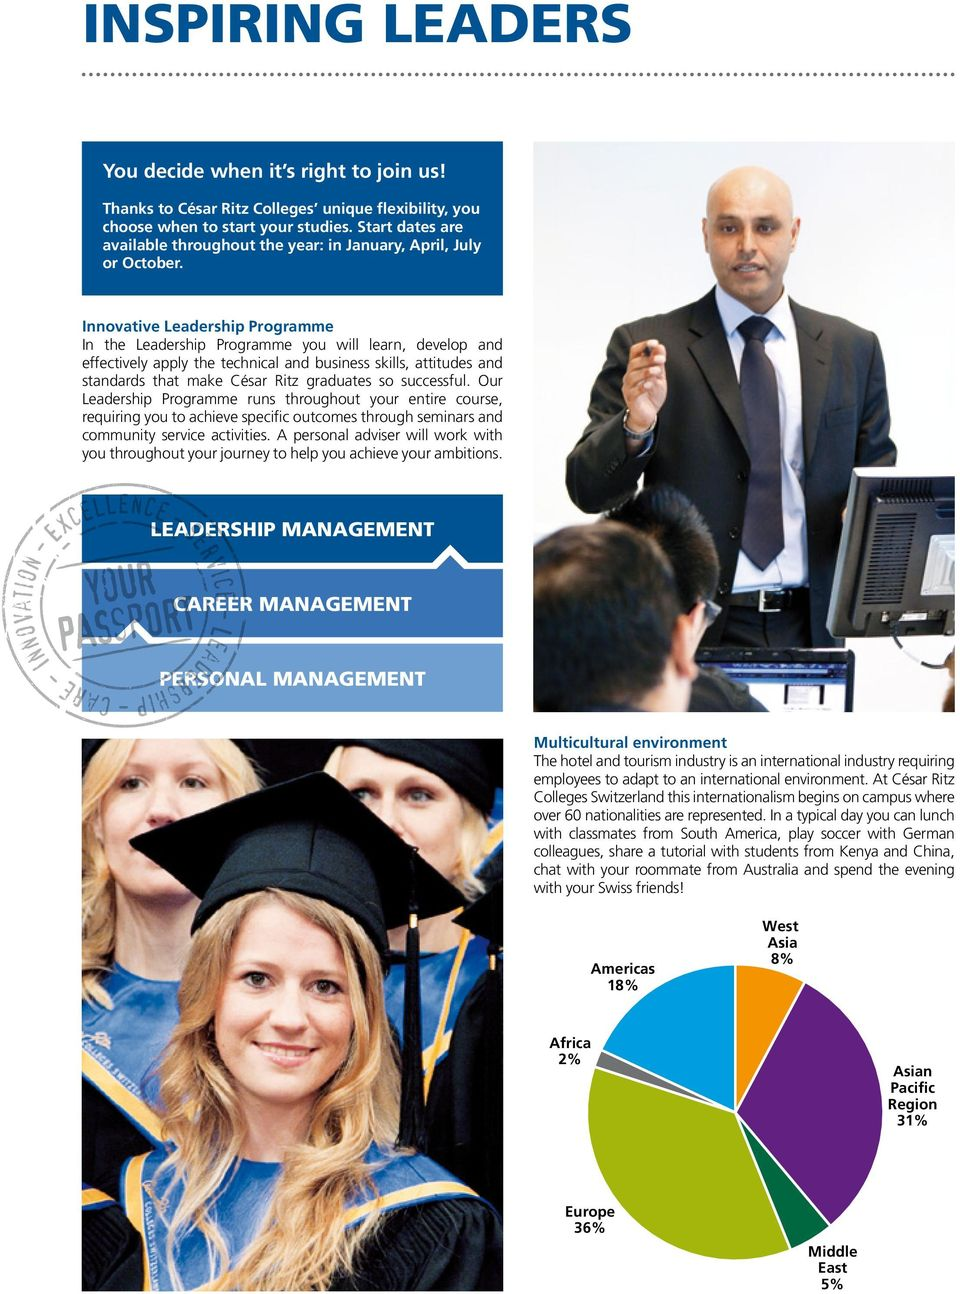 Innovative Leadership Programme In the Leadership Programme you will learn, develop and effectively apply the technical and business skills, attitudes and standards that make César Ritz graduates so